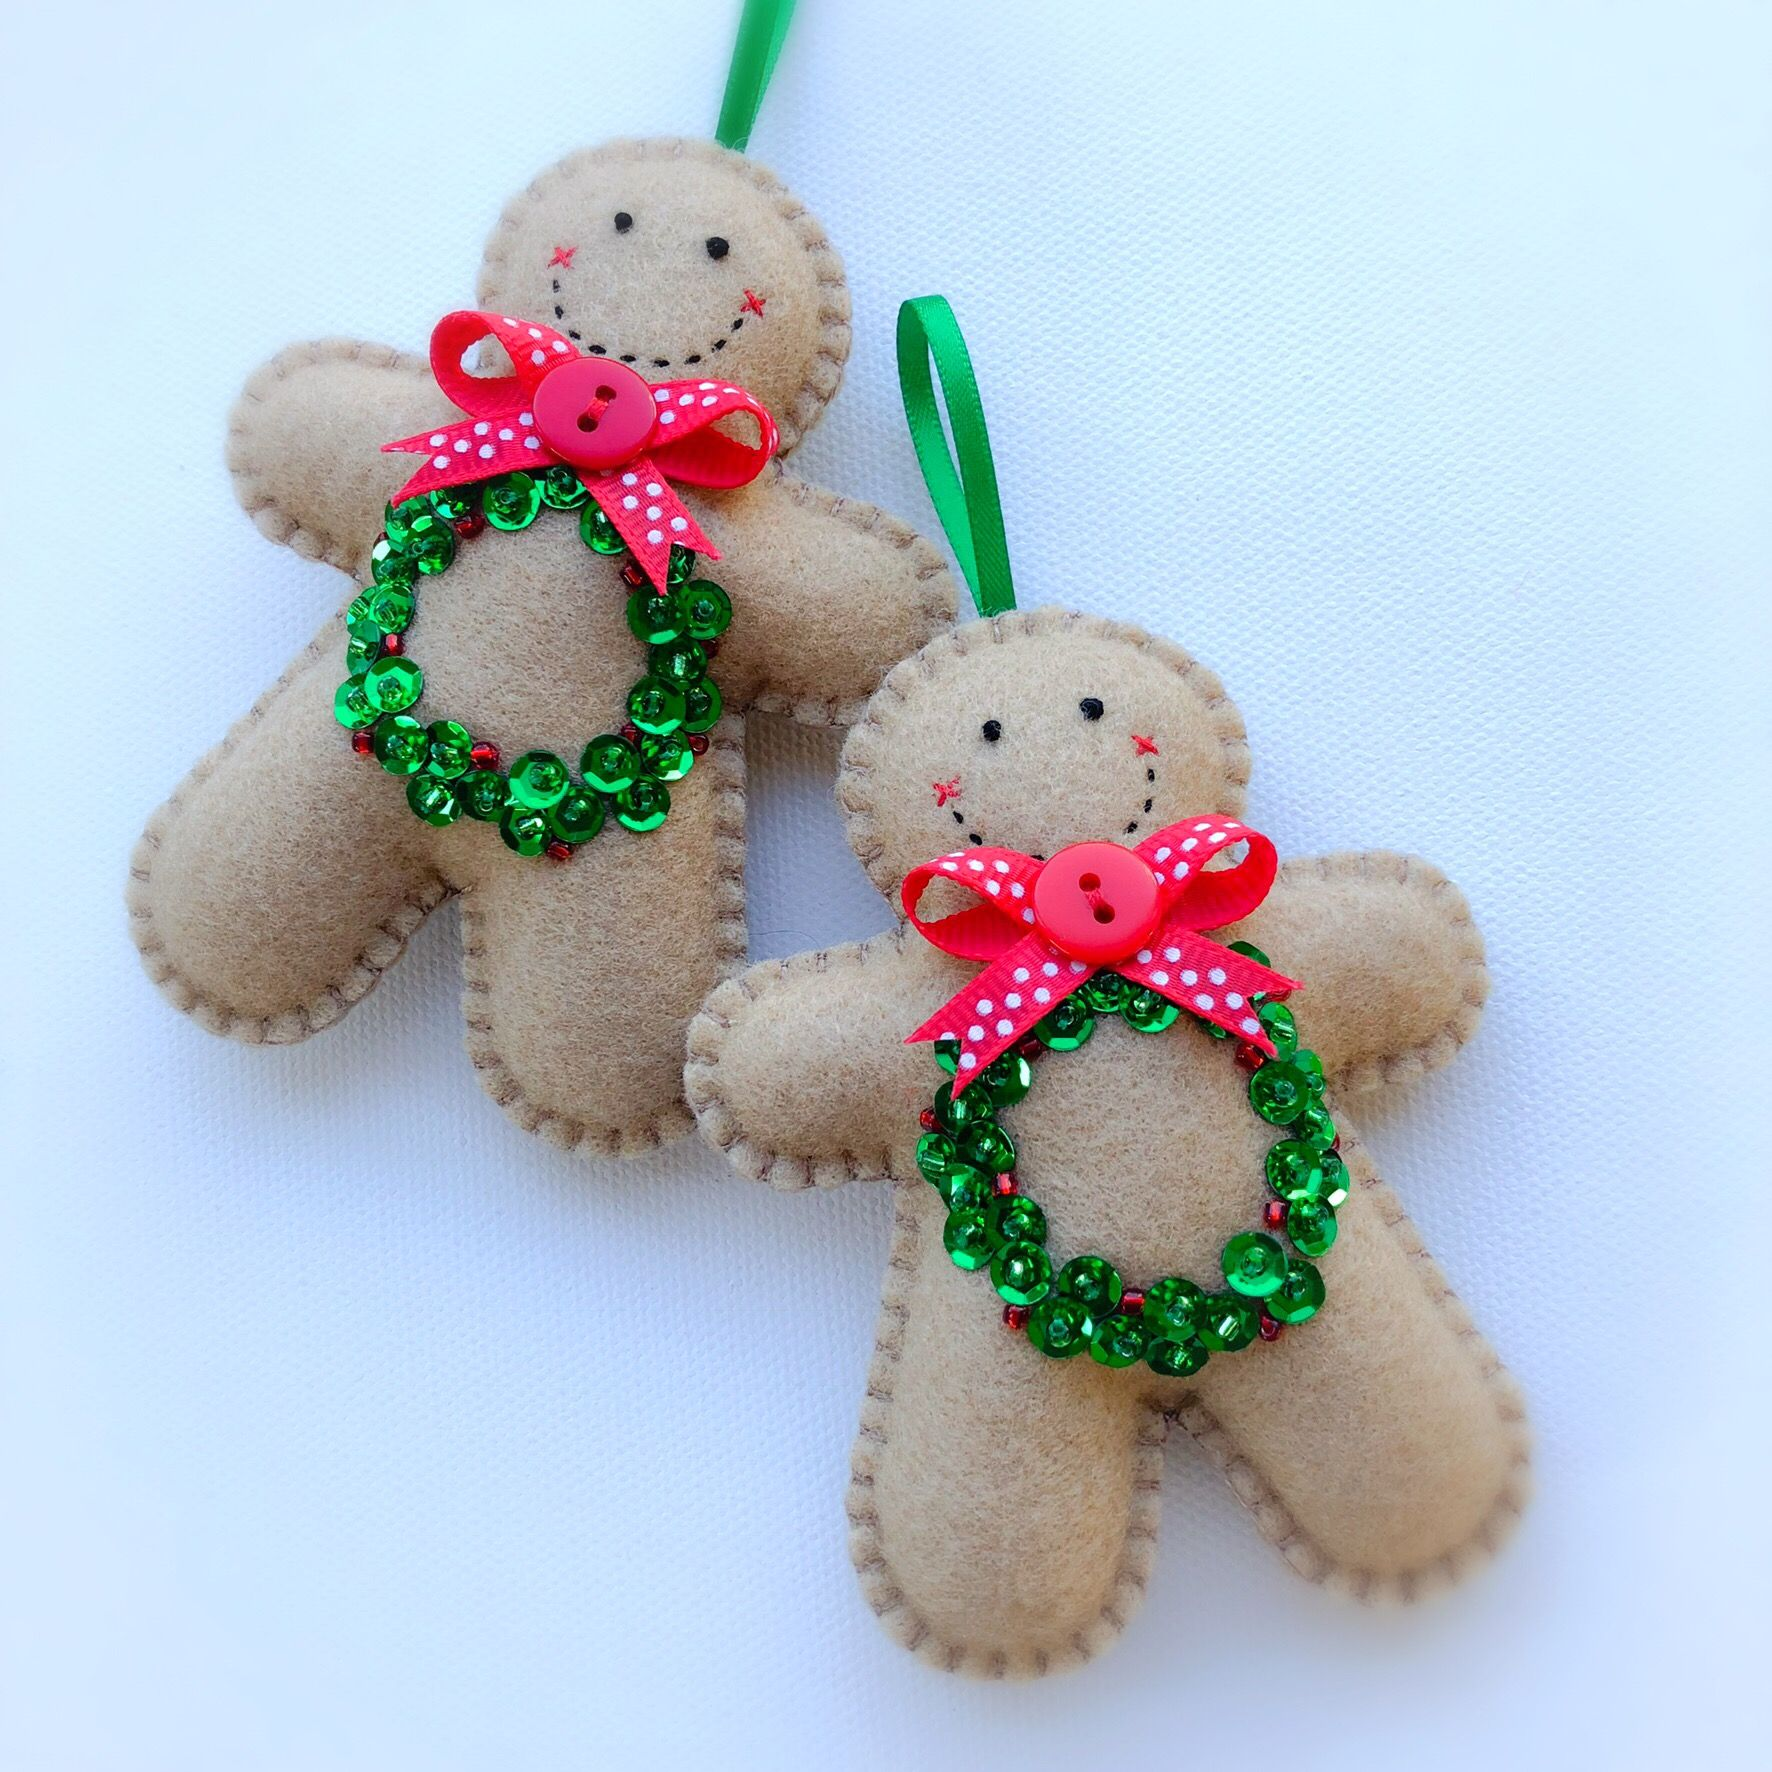 Hand Stitched Felt Gingerbread Men Christmas Ornaments Sewn